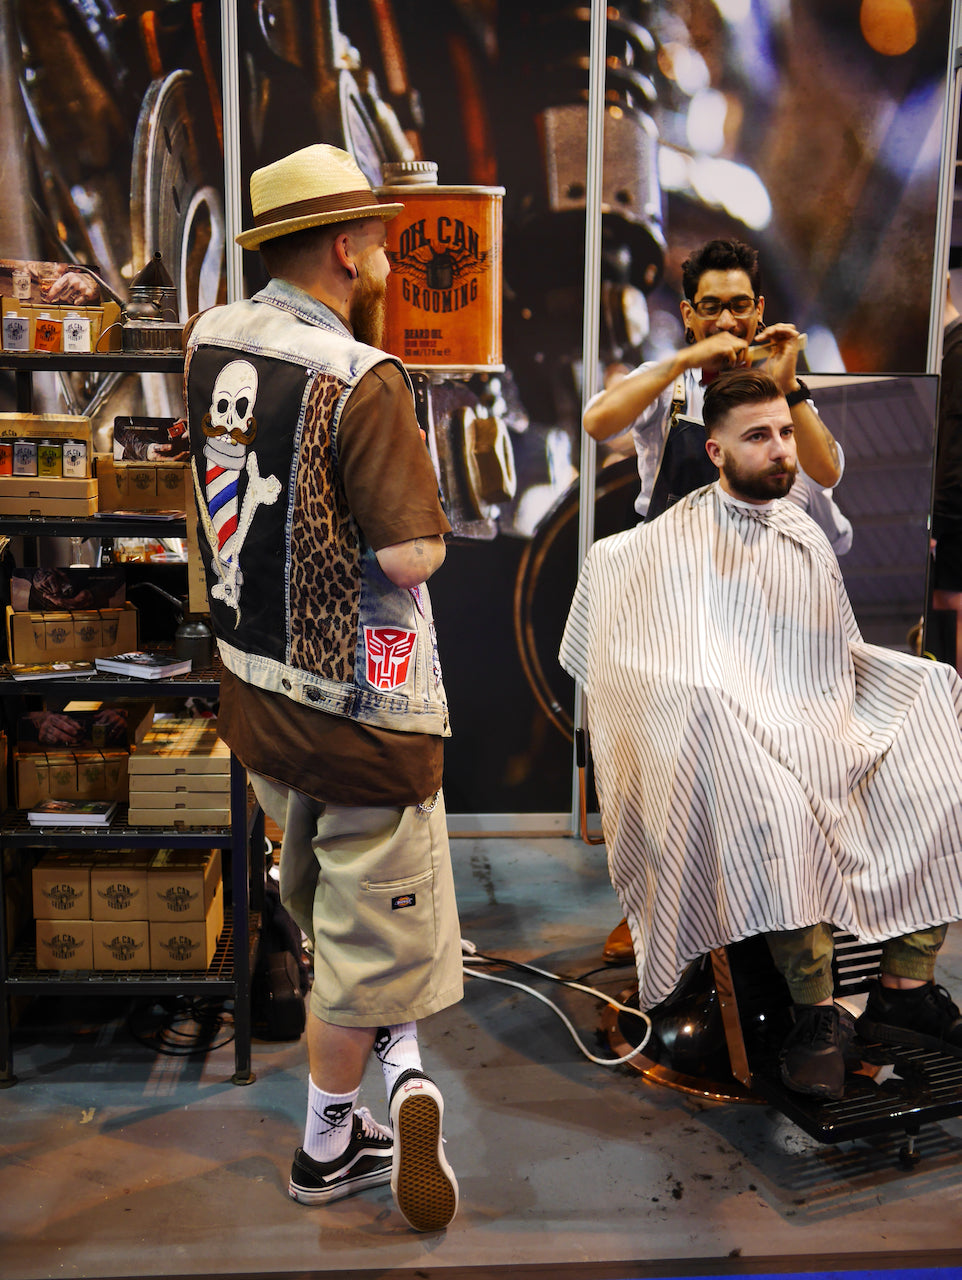 Oil Can Grooming Barber Connect Trade Show with Danny the Dogg Gio the New Kid